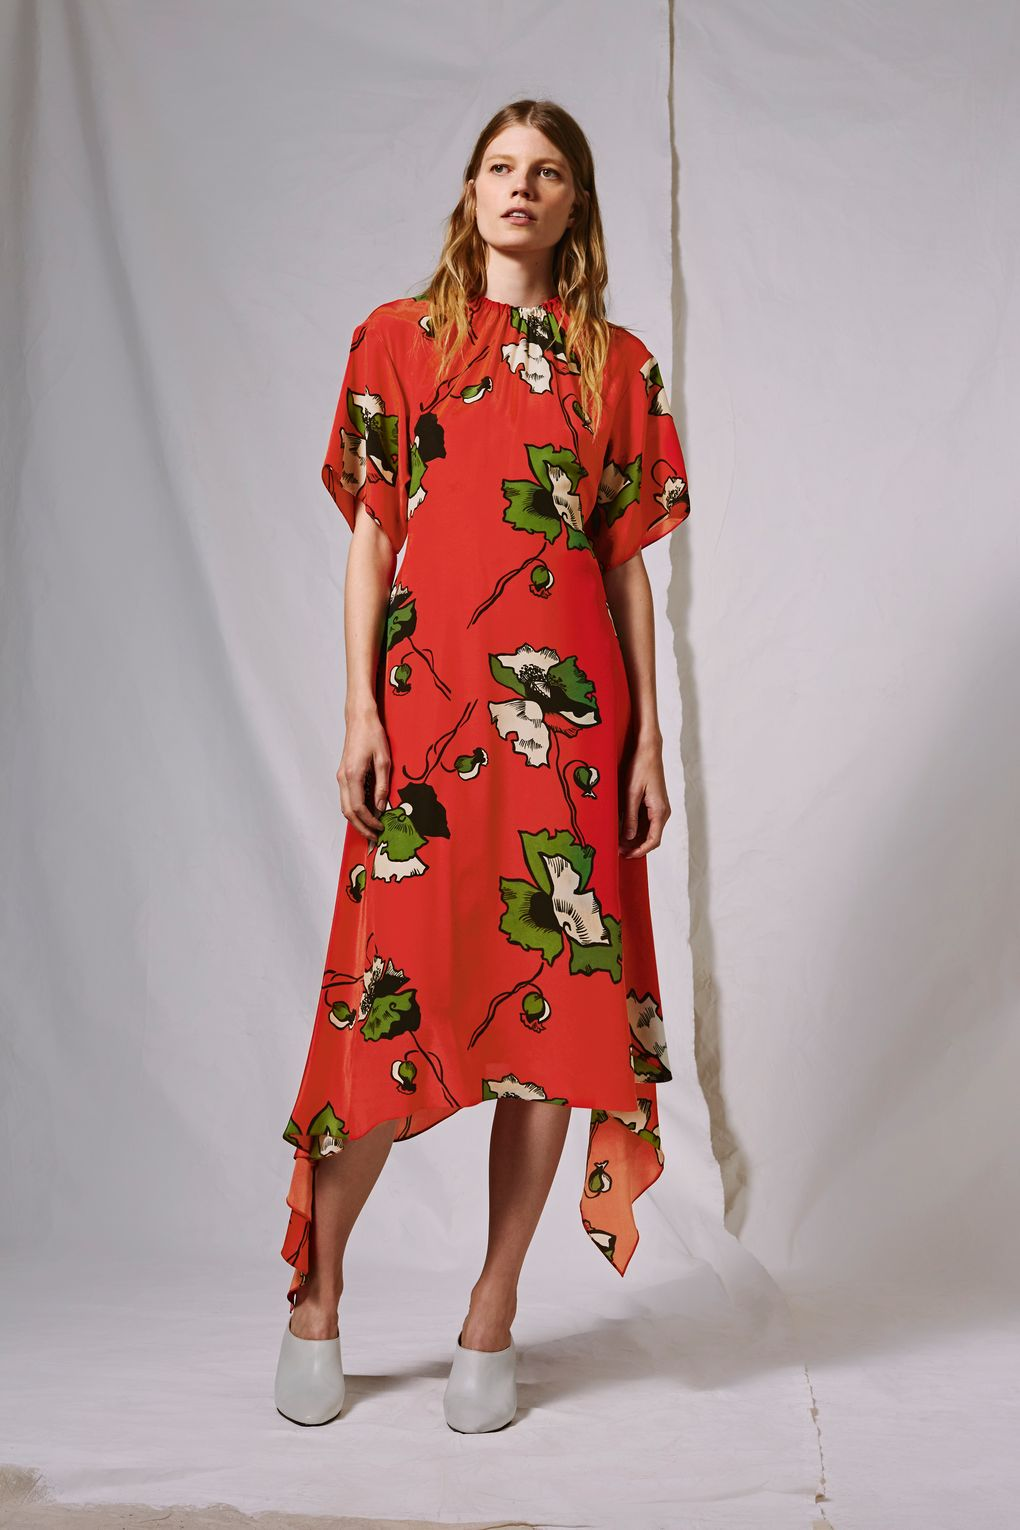 <a href='http://www.topshop.com/en/tsuk/product/new-in-this-week-2169932/new-in-fashion-6367514/silk-poppy-skater-dress-by-boutique-6910827?bi=0&ps=20' target='_blank' rel='noopener noreferrer'>Topshop</a></p>